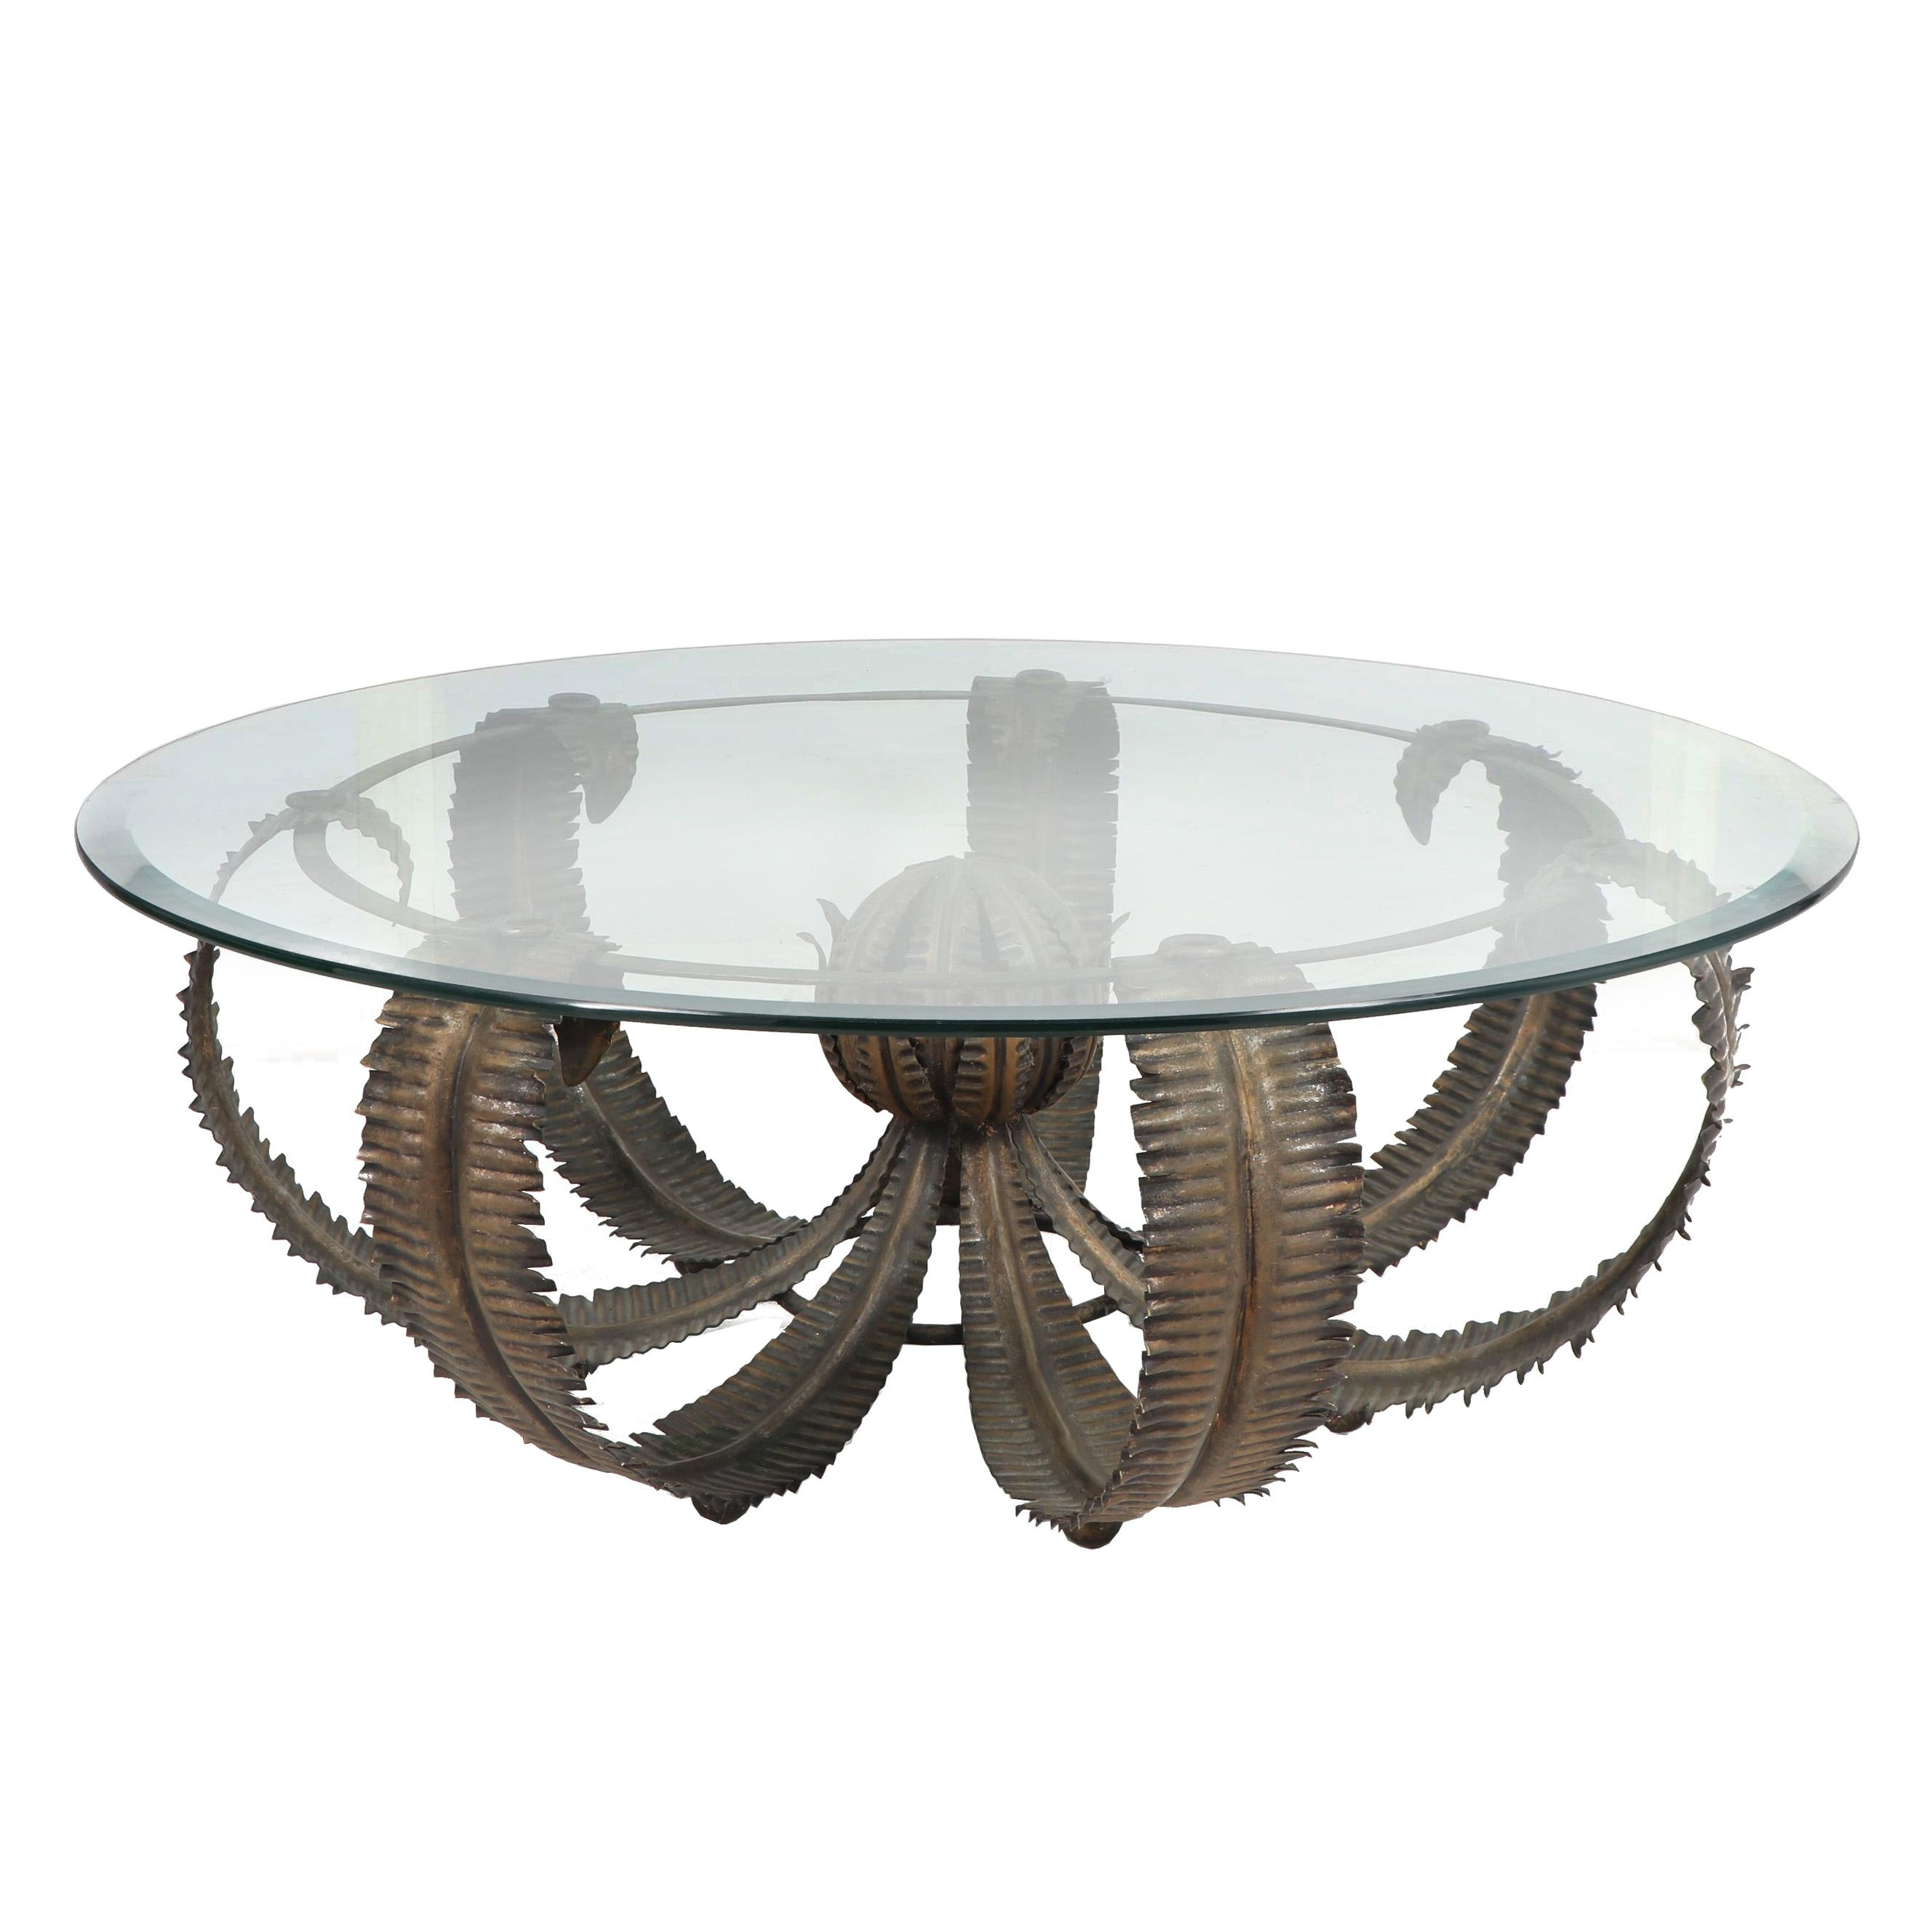 Sculptural Fern Leaf Metal Base Coffee Table With Glass Top, 21st Century